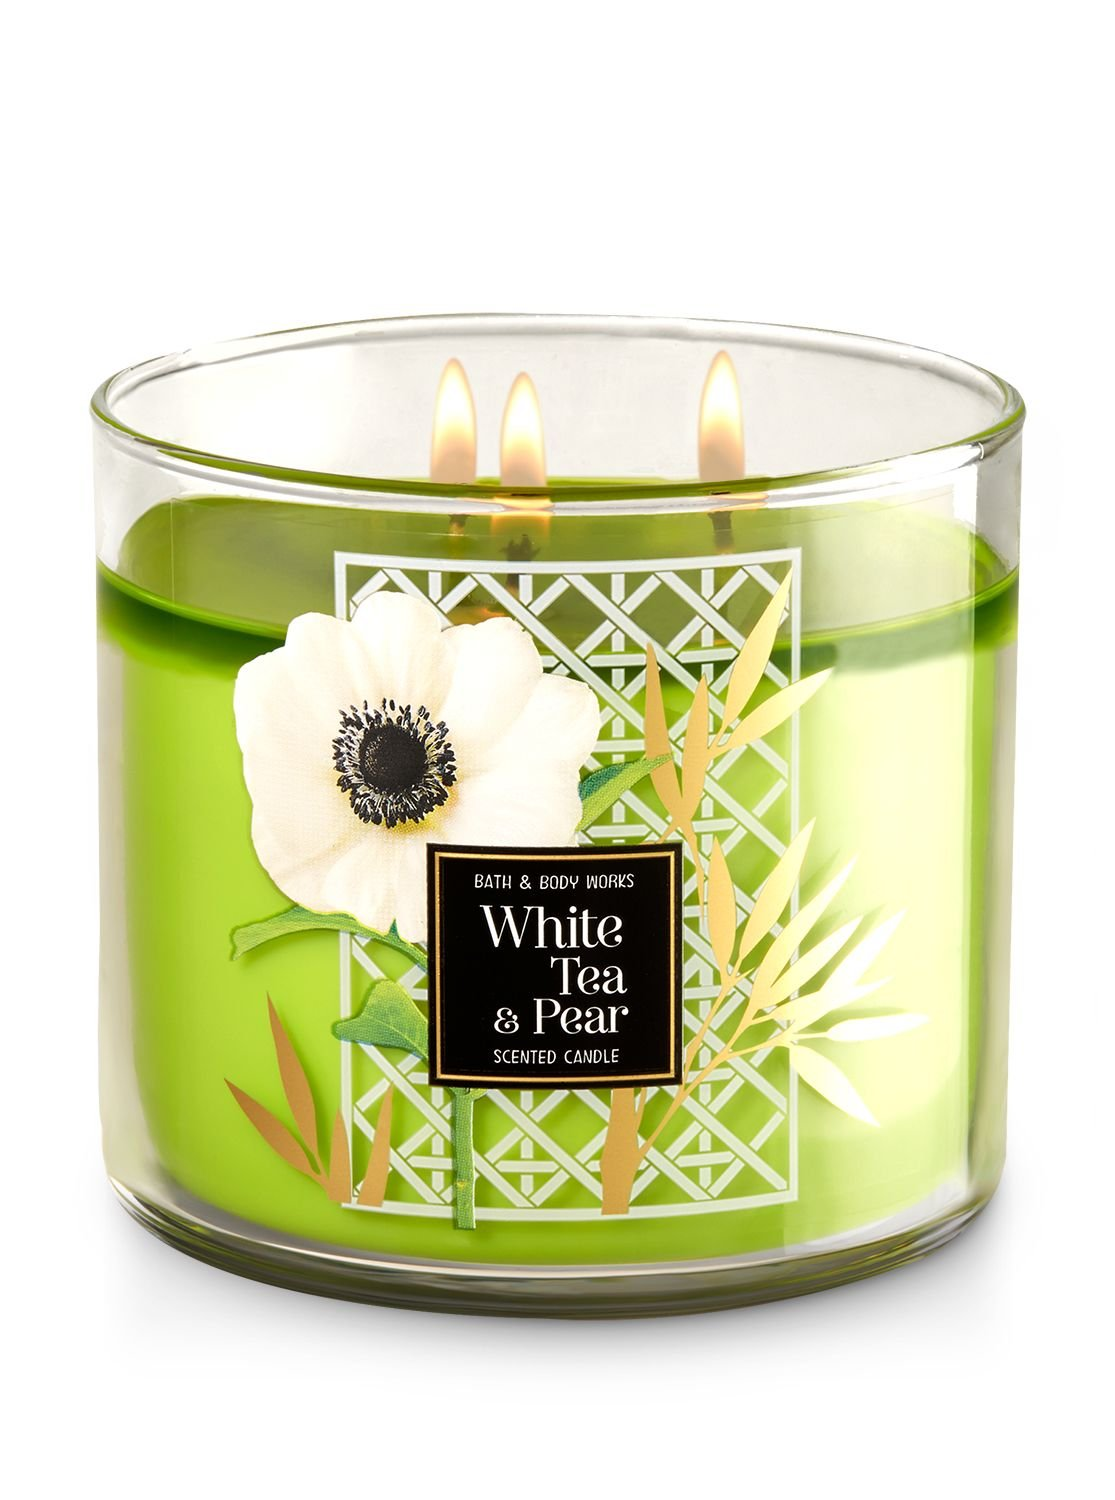 Bath & Body Works WHITE TEA & PEAR 3- wick candle Sweet White Tea, Barlette Pear, Sparkling Bergamont burns approximately 25-45 hours